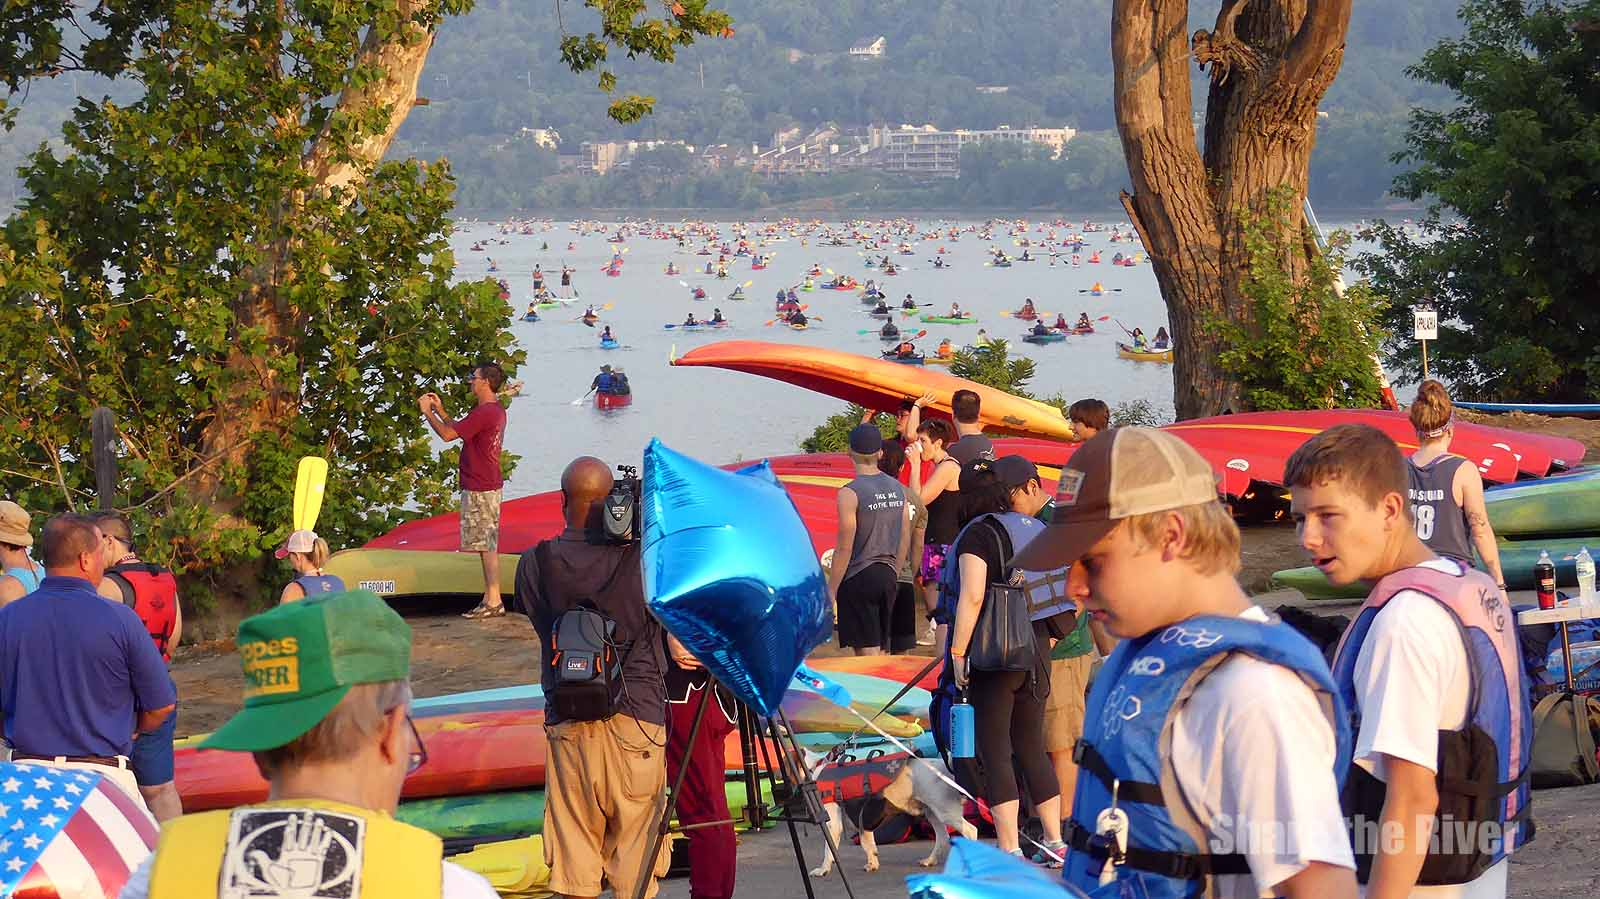 Our Model for Blazing Paddles? - The Epic Ohio River Paddlefest